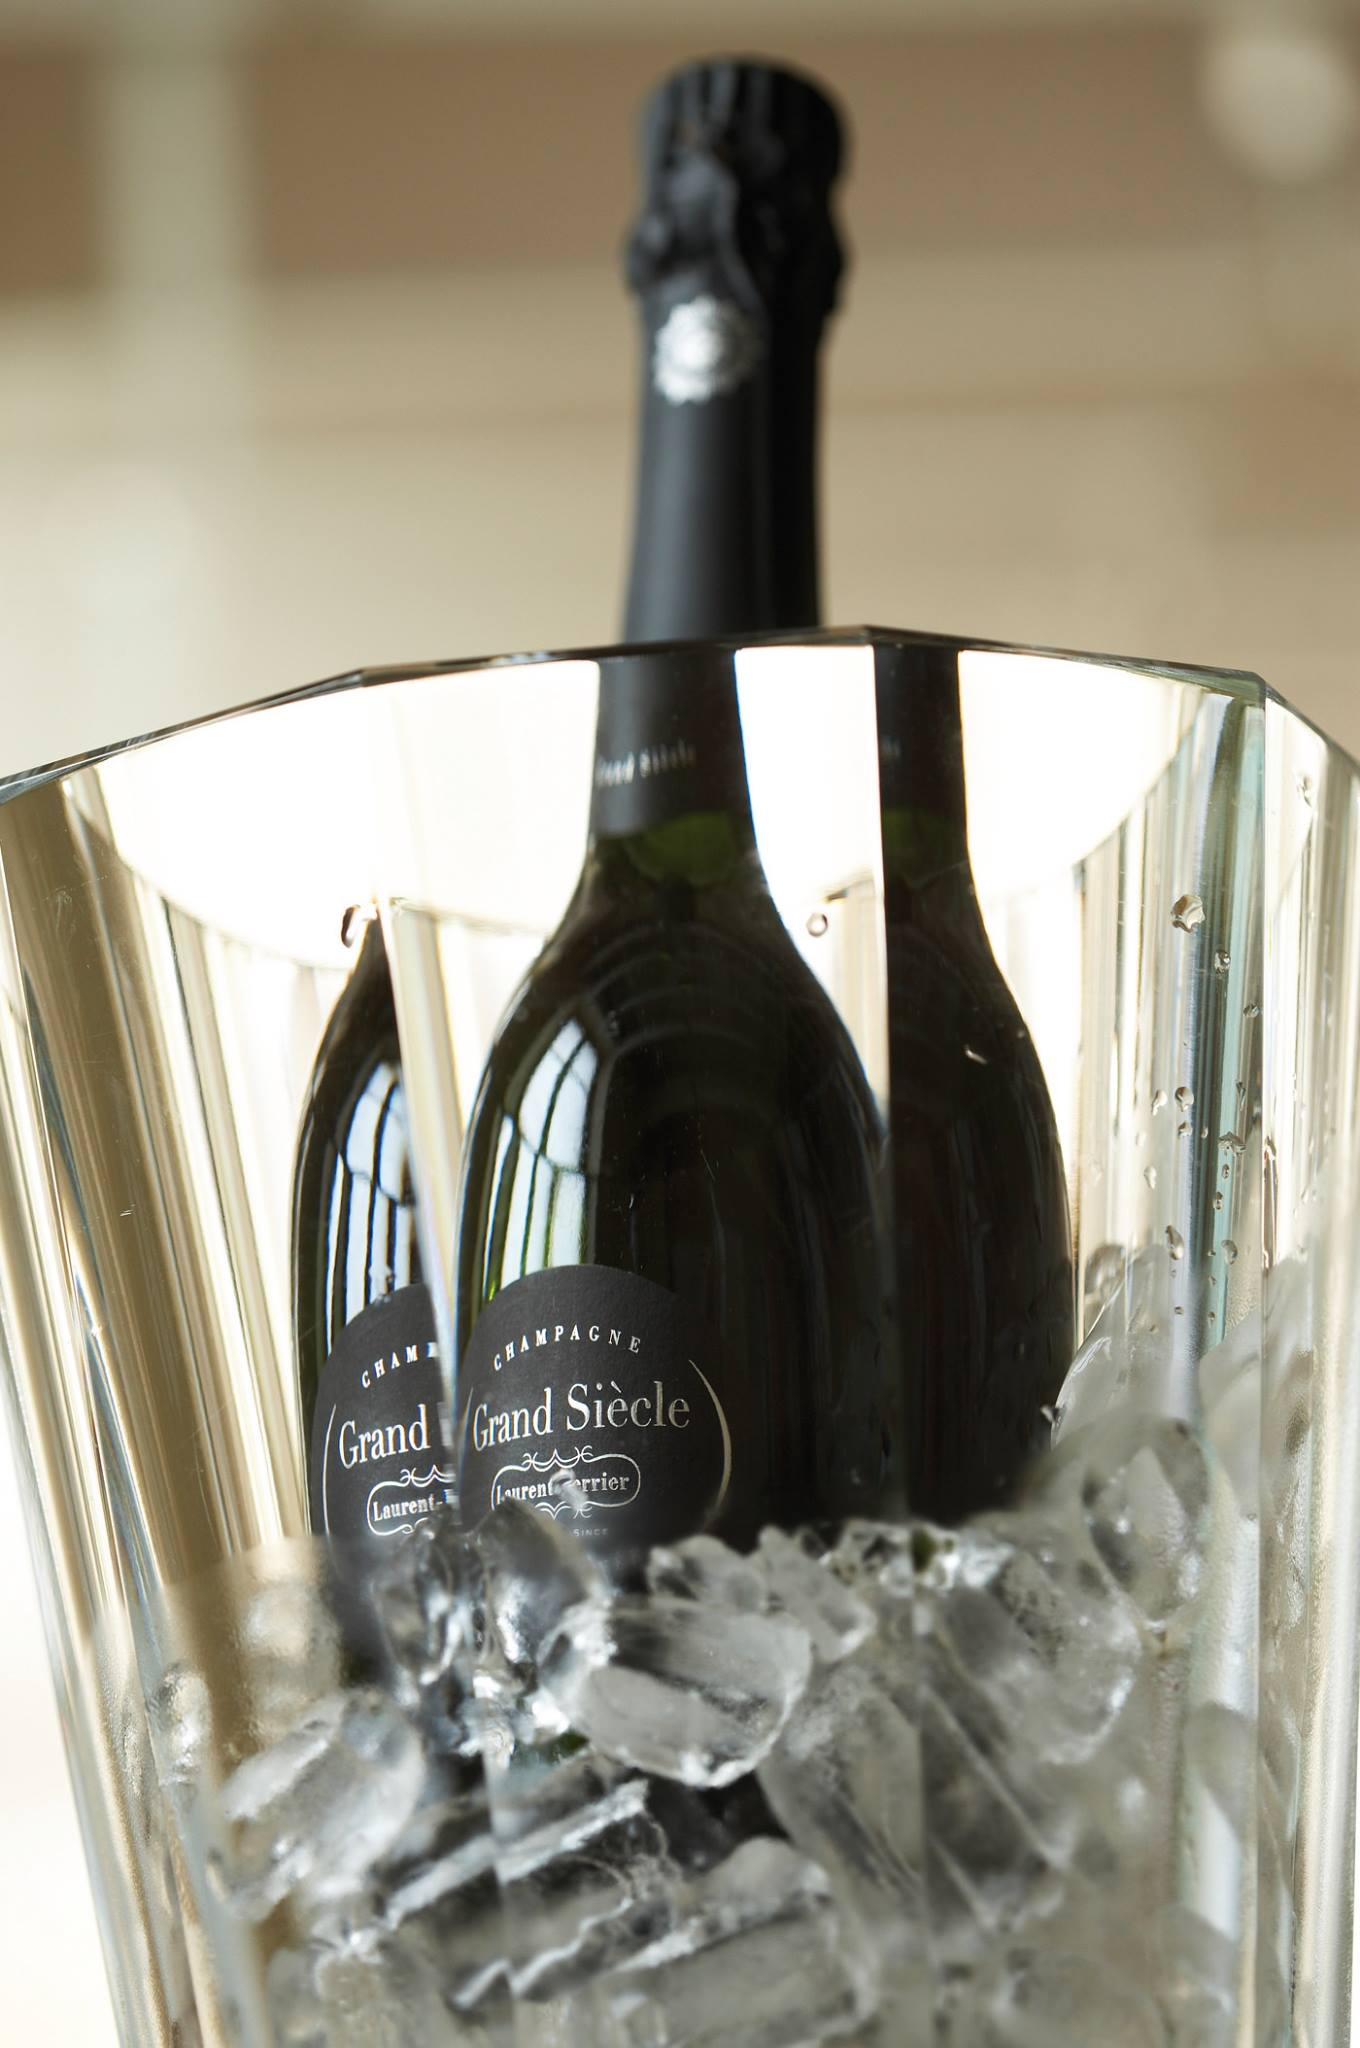 Laurrent Perrier Grand Siecle champagne